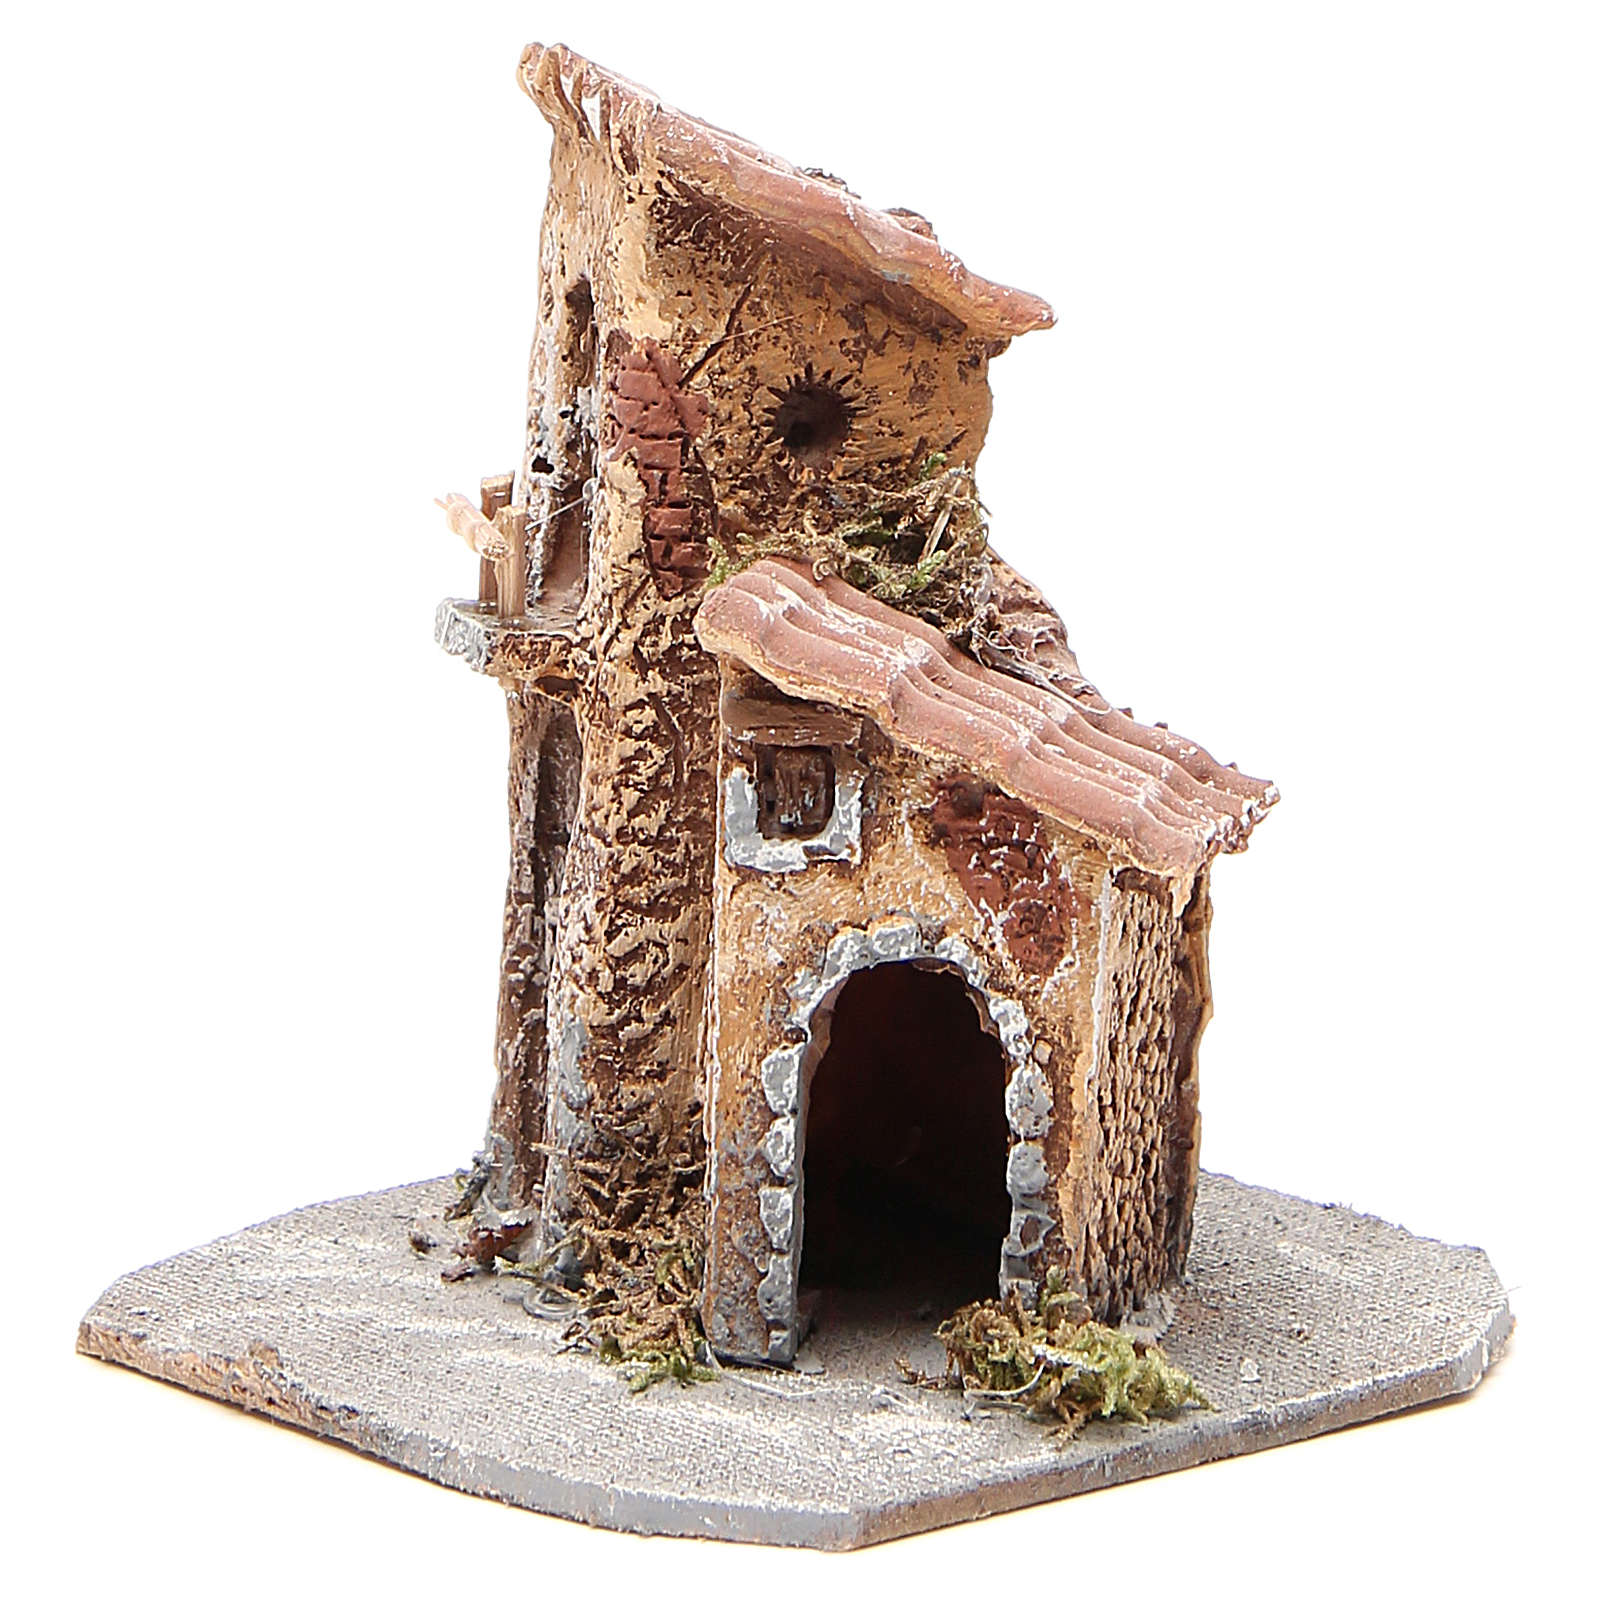 House in wood and resin for nativity scene, 15x12x15cm 4